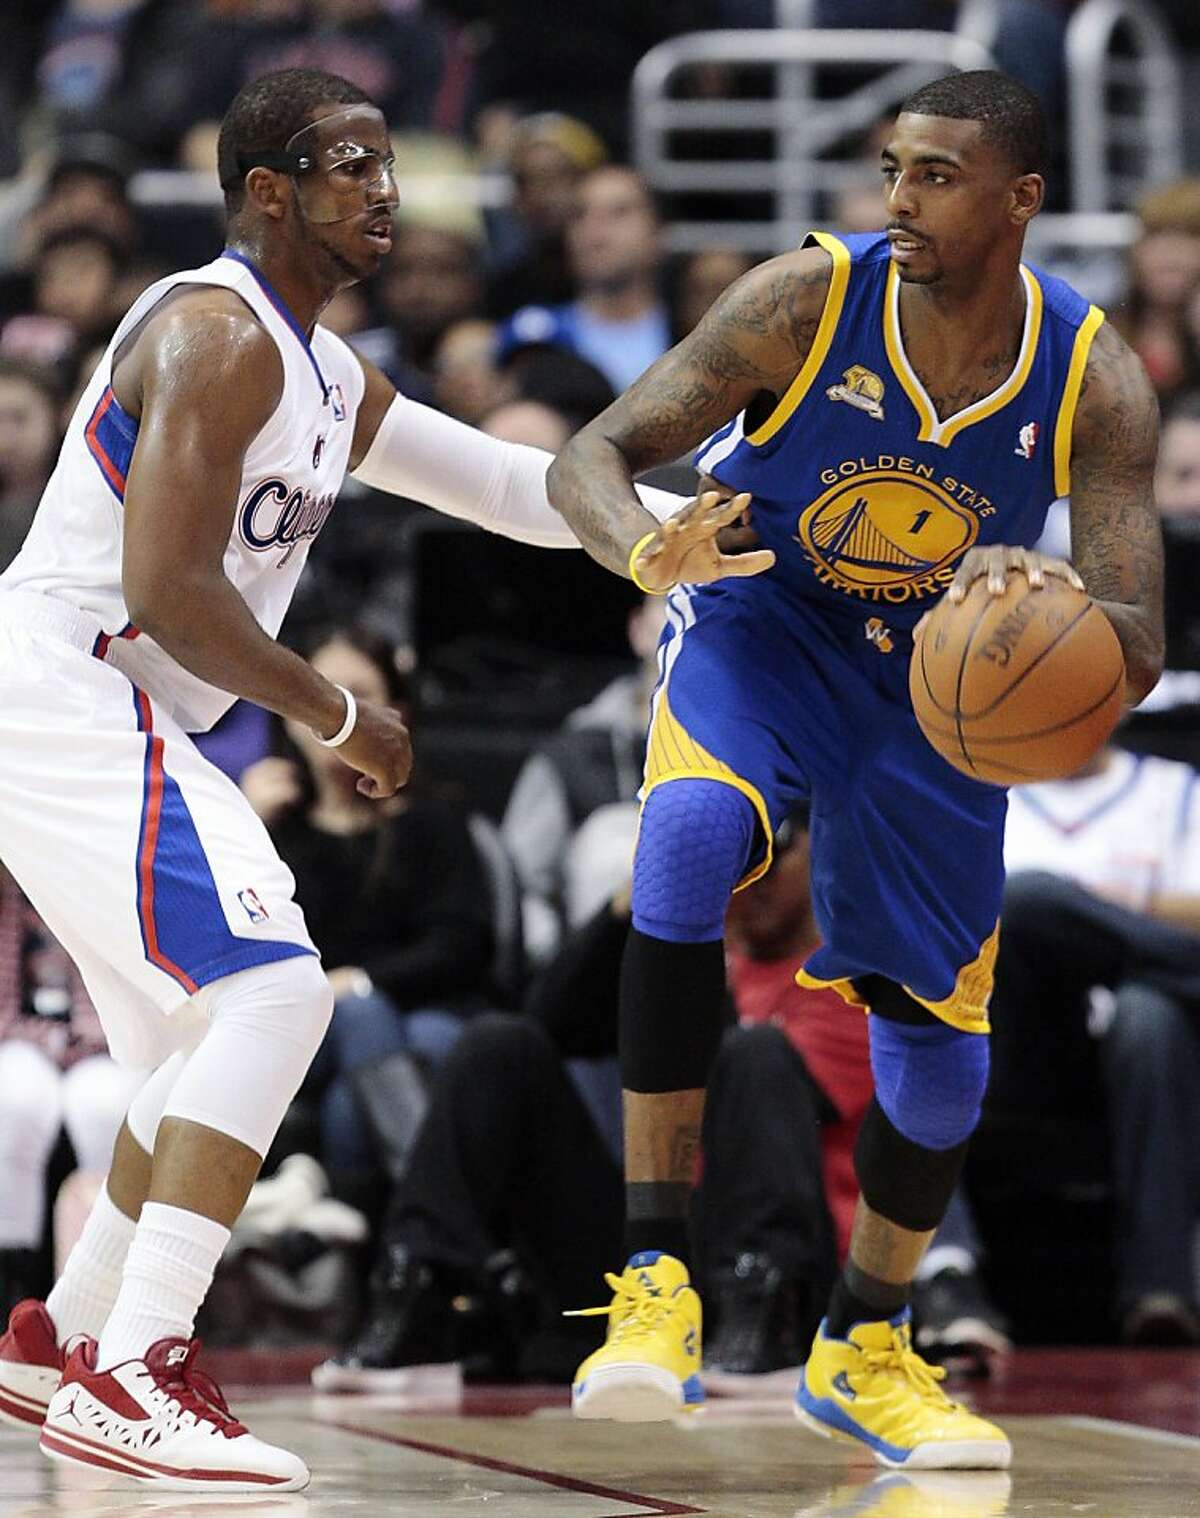 Golden State Warriors forward Dorell Wright, right, moves the ball as Los Angeles Clippers' Chris Paul defends in the first half of an NBA basketball game, Sunday, March 11, 2012, in Los Angeles. (AP Photo/Jason Redmond)